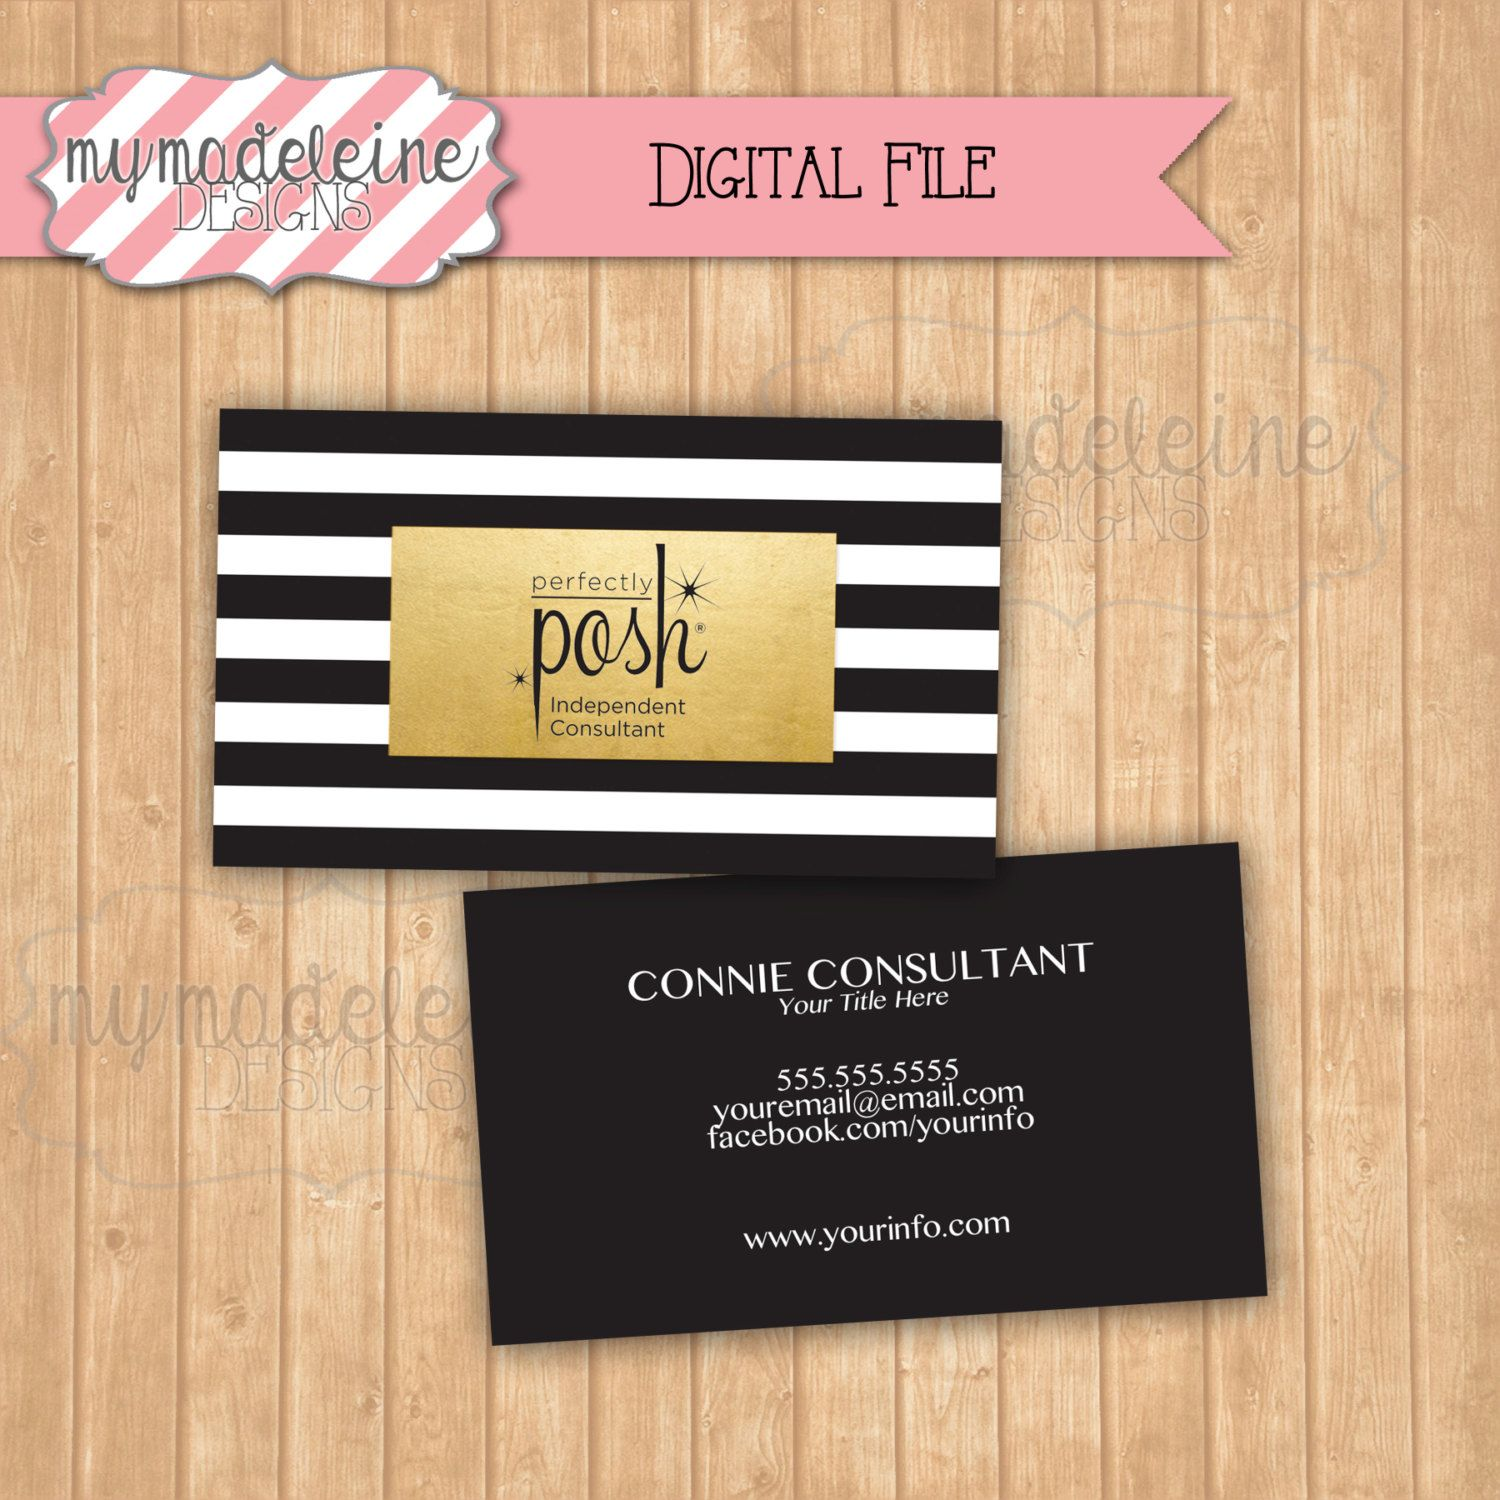 Perfectly posh business card marketing materials direct sales perfectly posh business card marketing materials direct sales digital file printable black and gold by mymadeleine magicingreecefo Choice Image